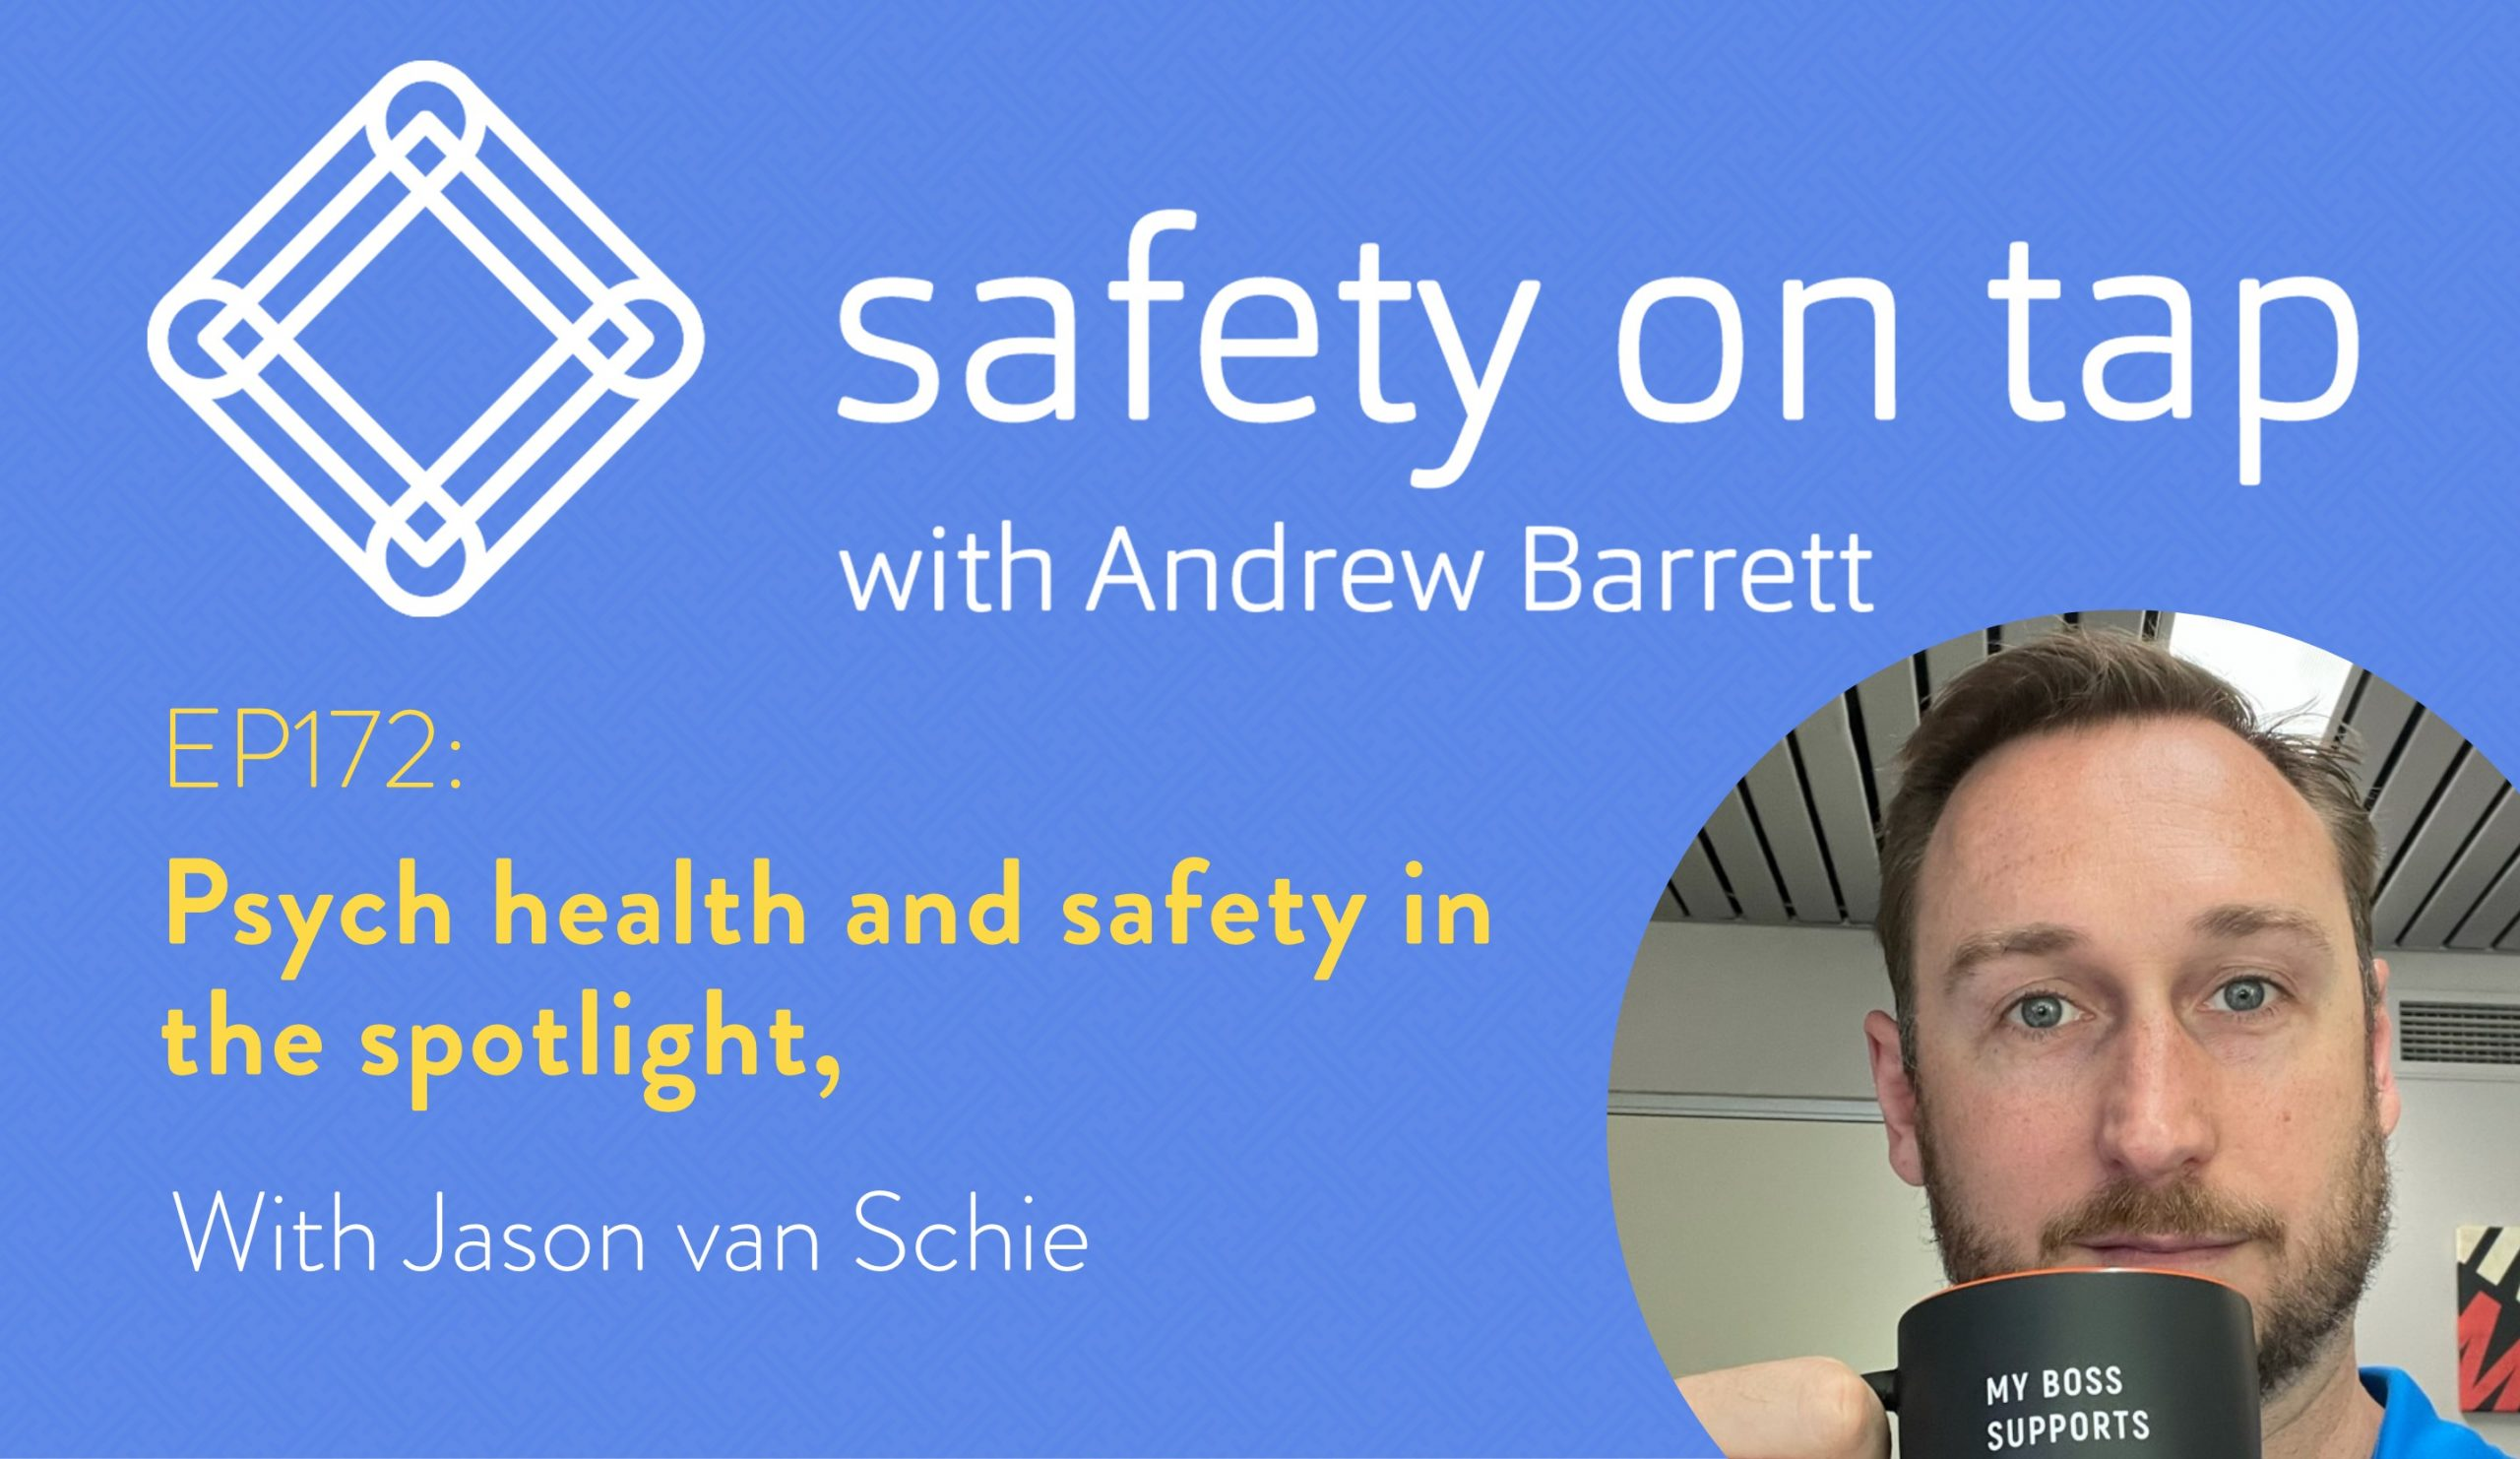 Ep172: Psych health and safety in the spotlight, with Jason van Schie